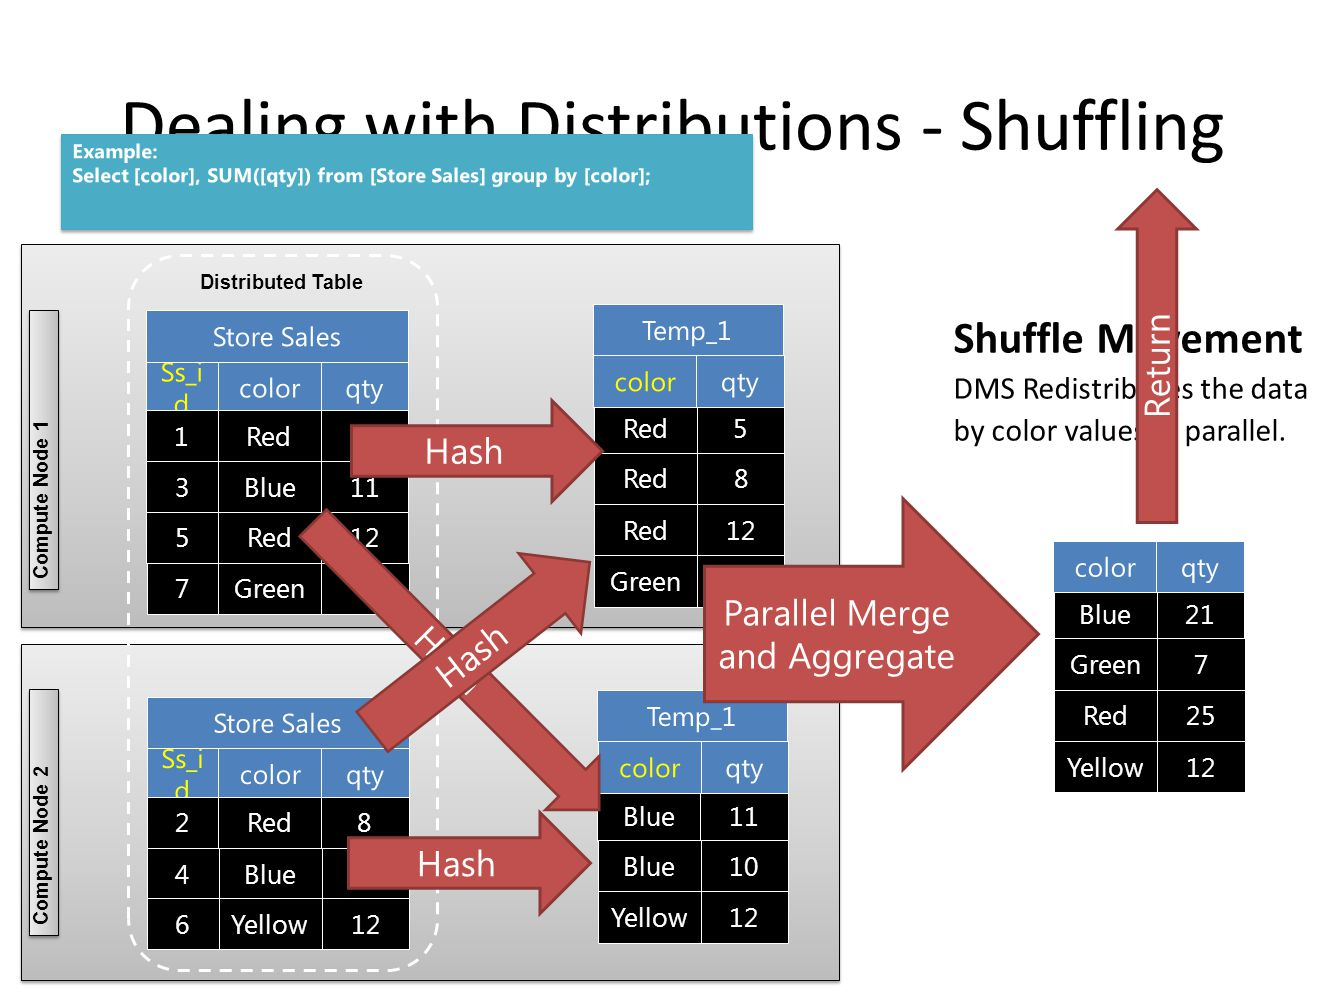 Shuffle Movement DMS Redistributes the data by color values in parallel. Compute Node 1 Compute Node 2 Dealing with Distributions - Shuffling Example: